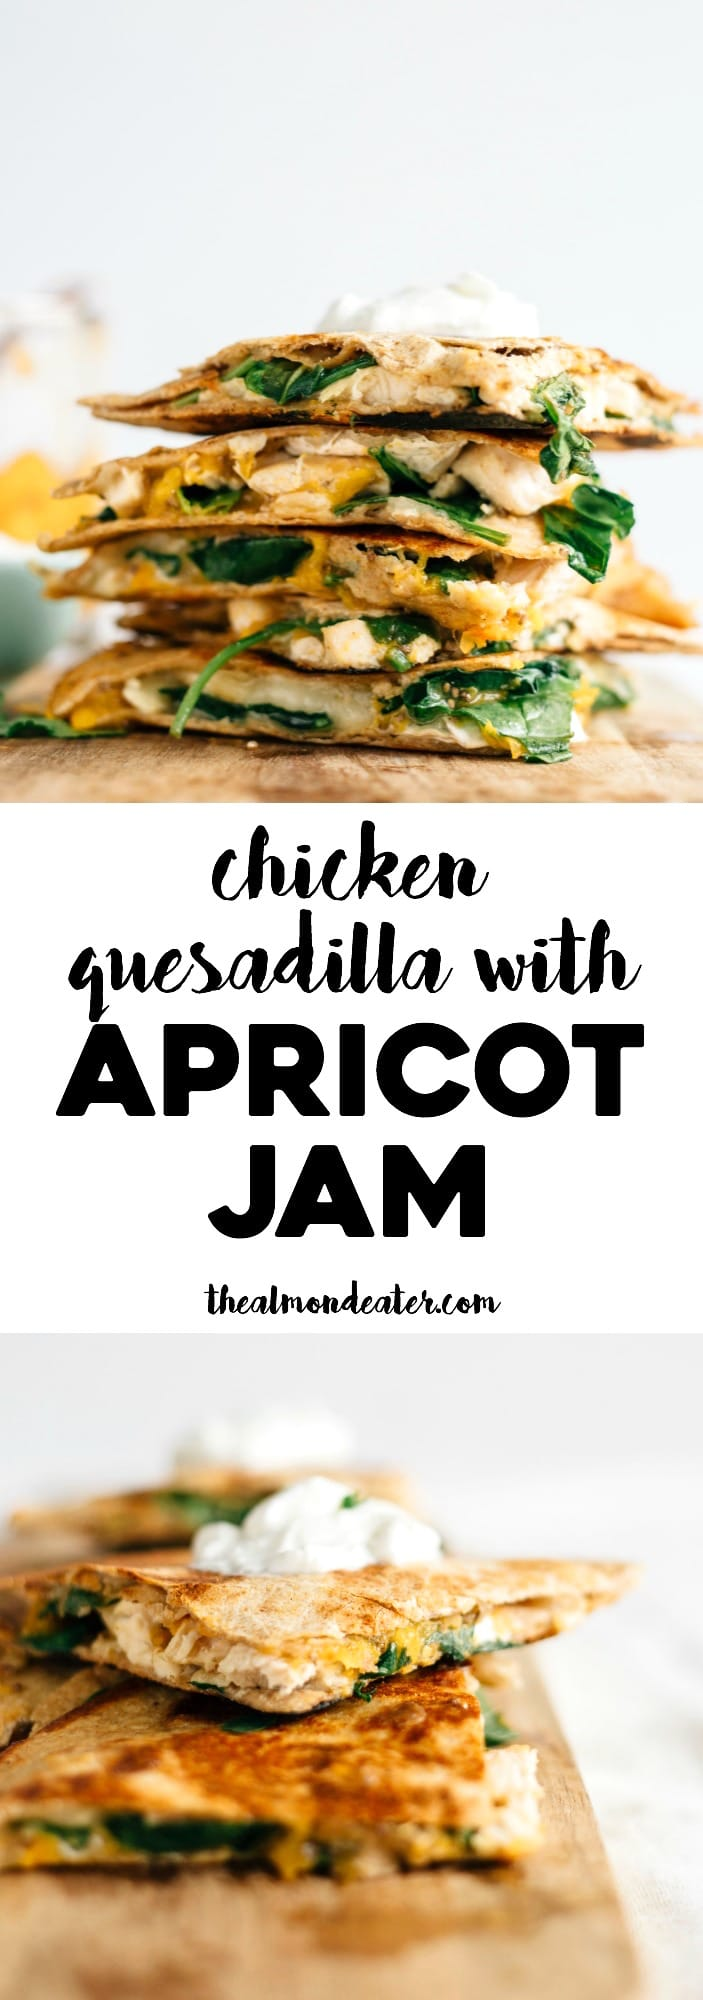 Chicken Quesadilla with Apricot Jam | Adding apricot jam to this quesadilla definitely takes it up a notch! So so good